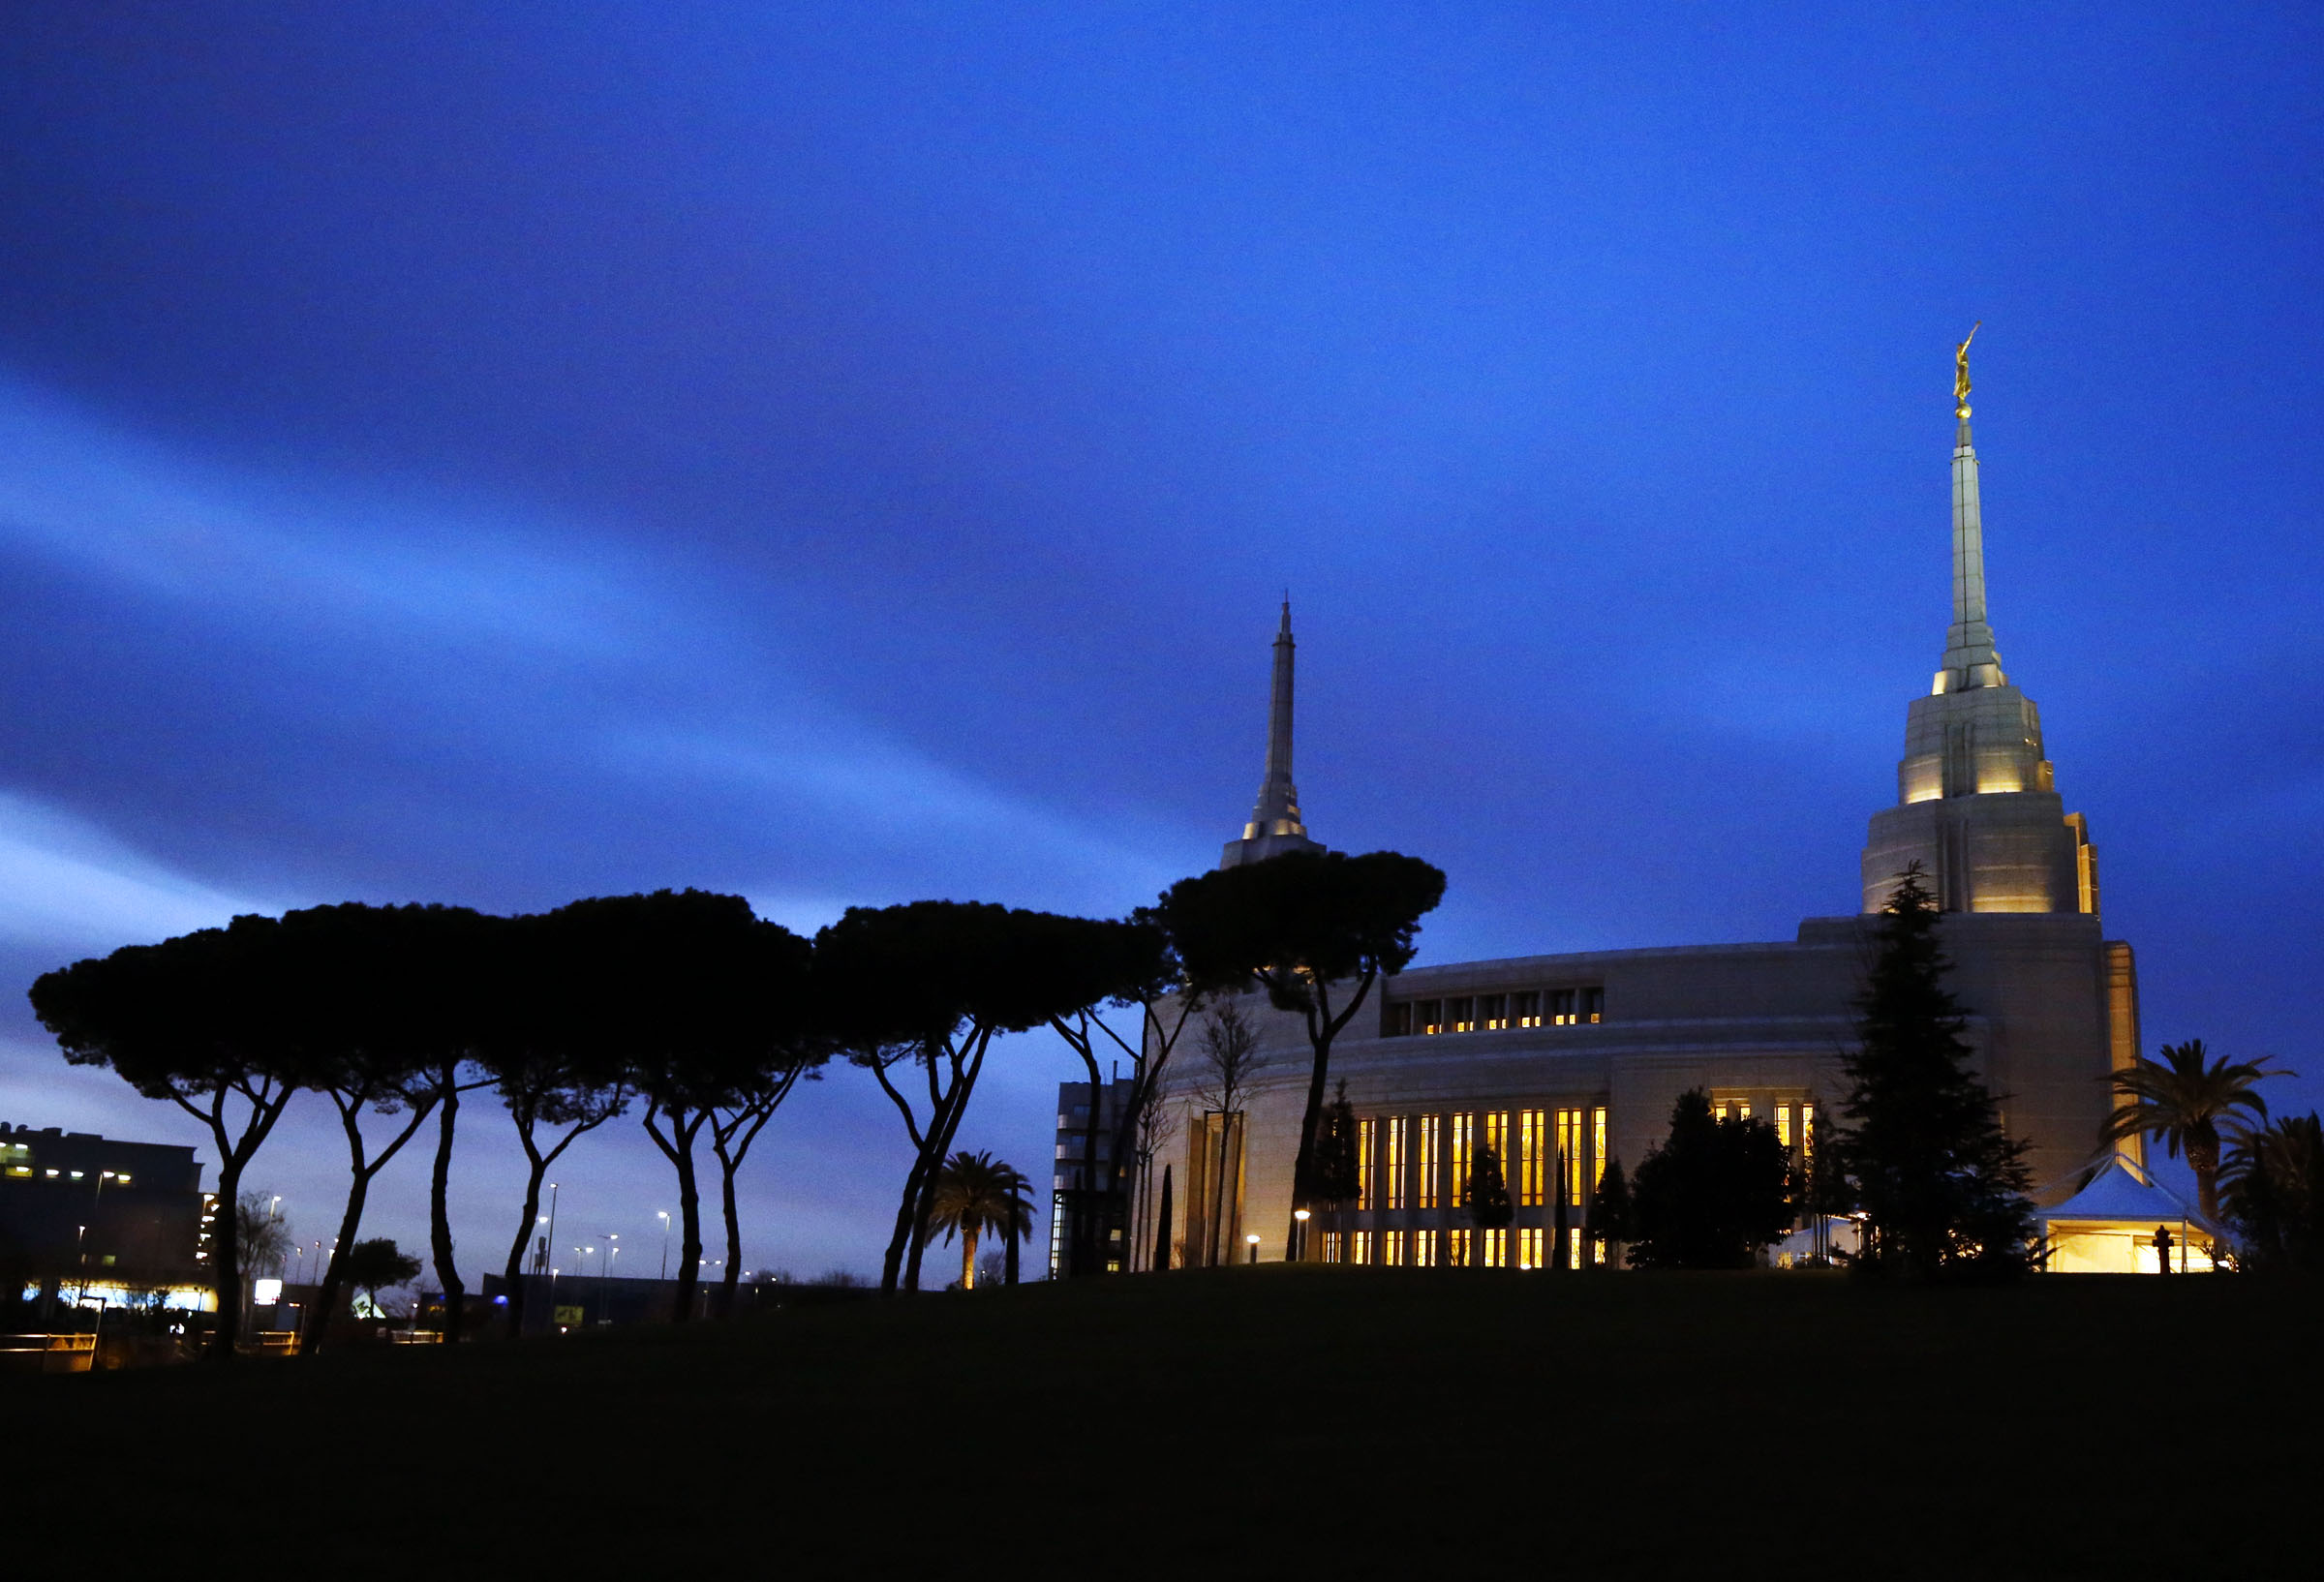 The Rome Italy Temple of The Church of Jesus Christ of Latter-day Saints is pictured after sunset on Sunday, Jan. 13, 2019.